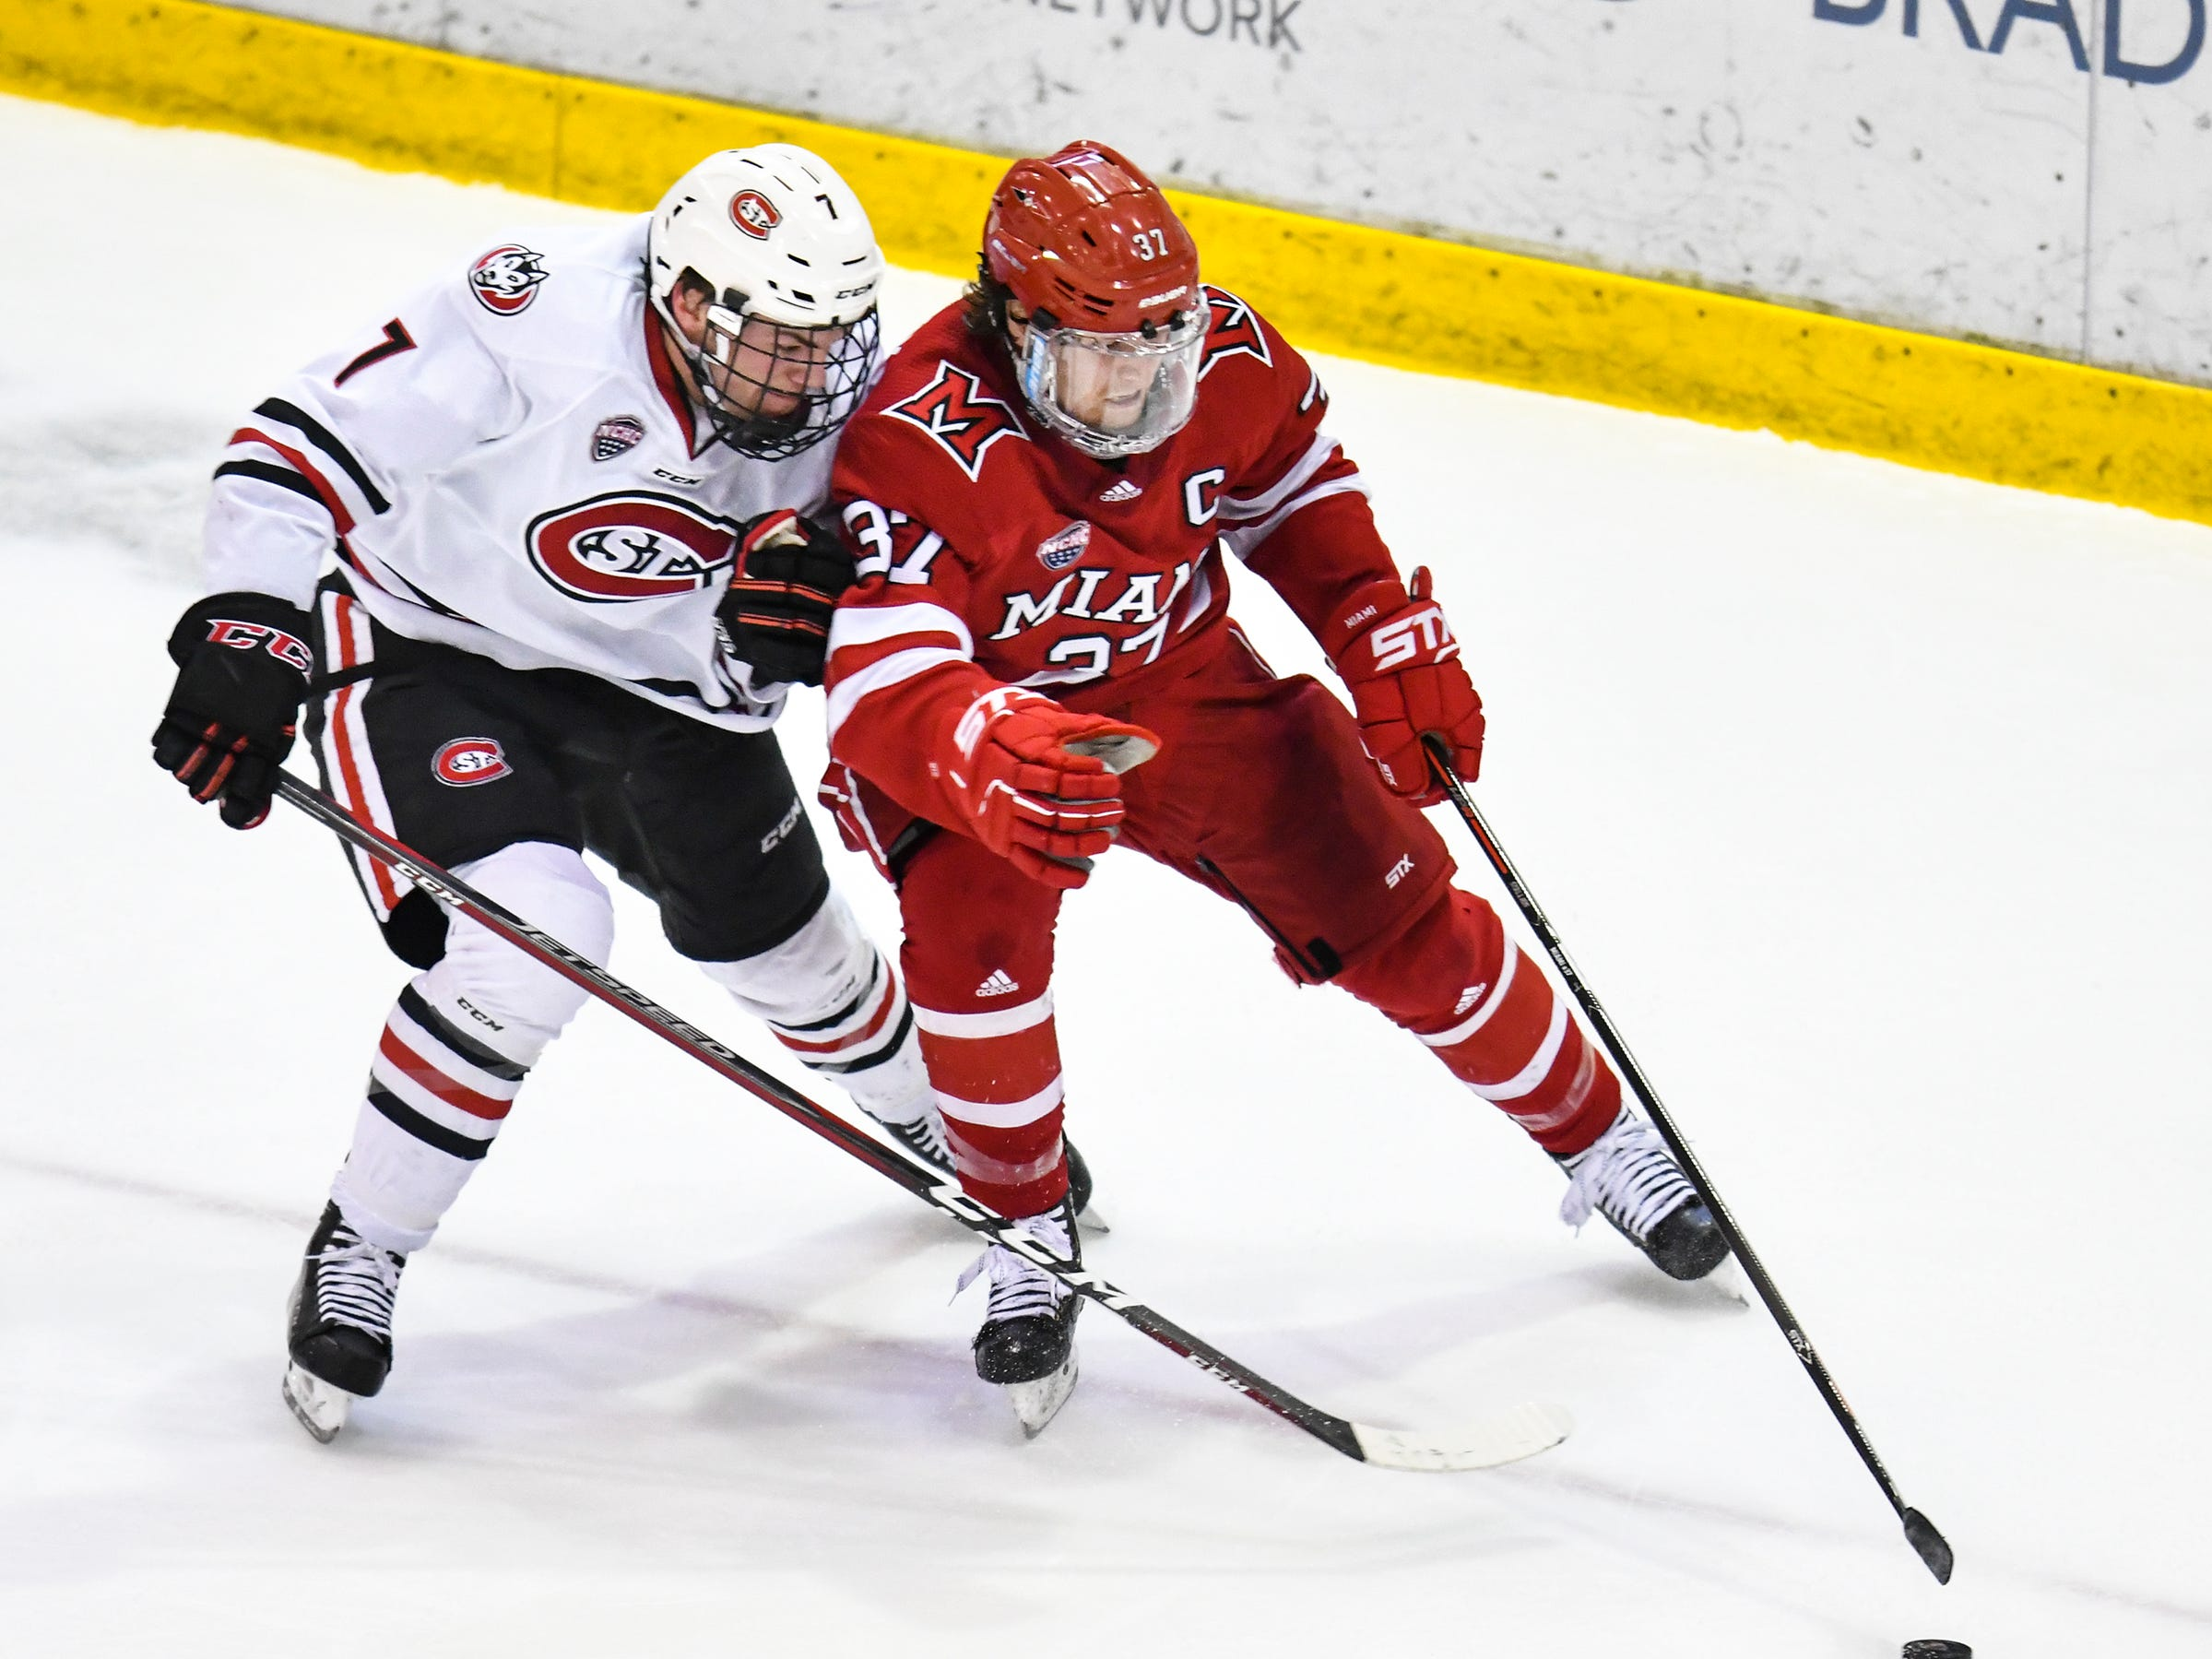 St. Cloud State's Nick Poehling and Josh Melnick of Miami struggle for control of the puck during the second period of the Saturday, March 16 game at the Herb Brooks National Hockey Center in St. Cloud.